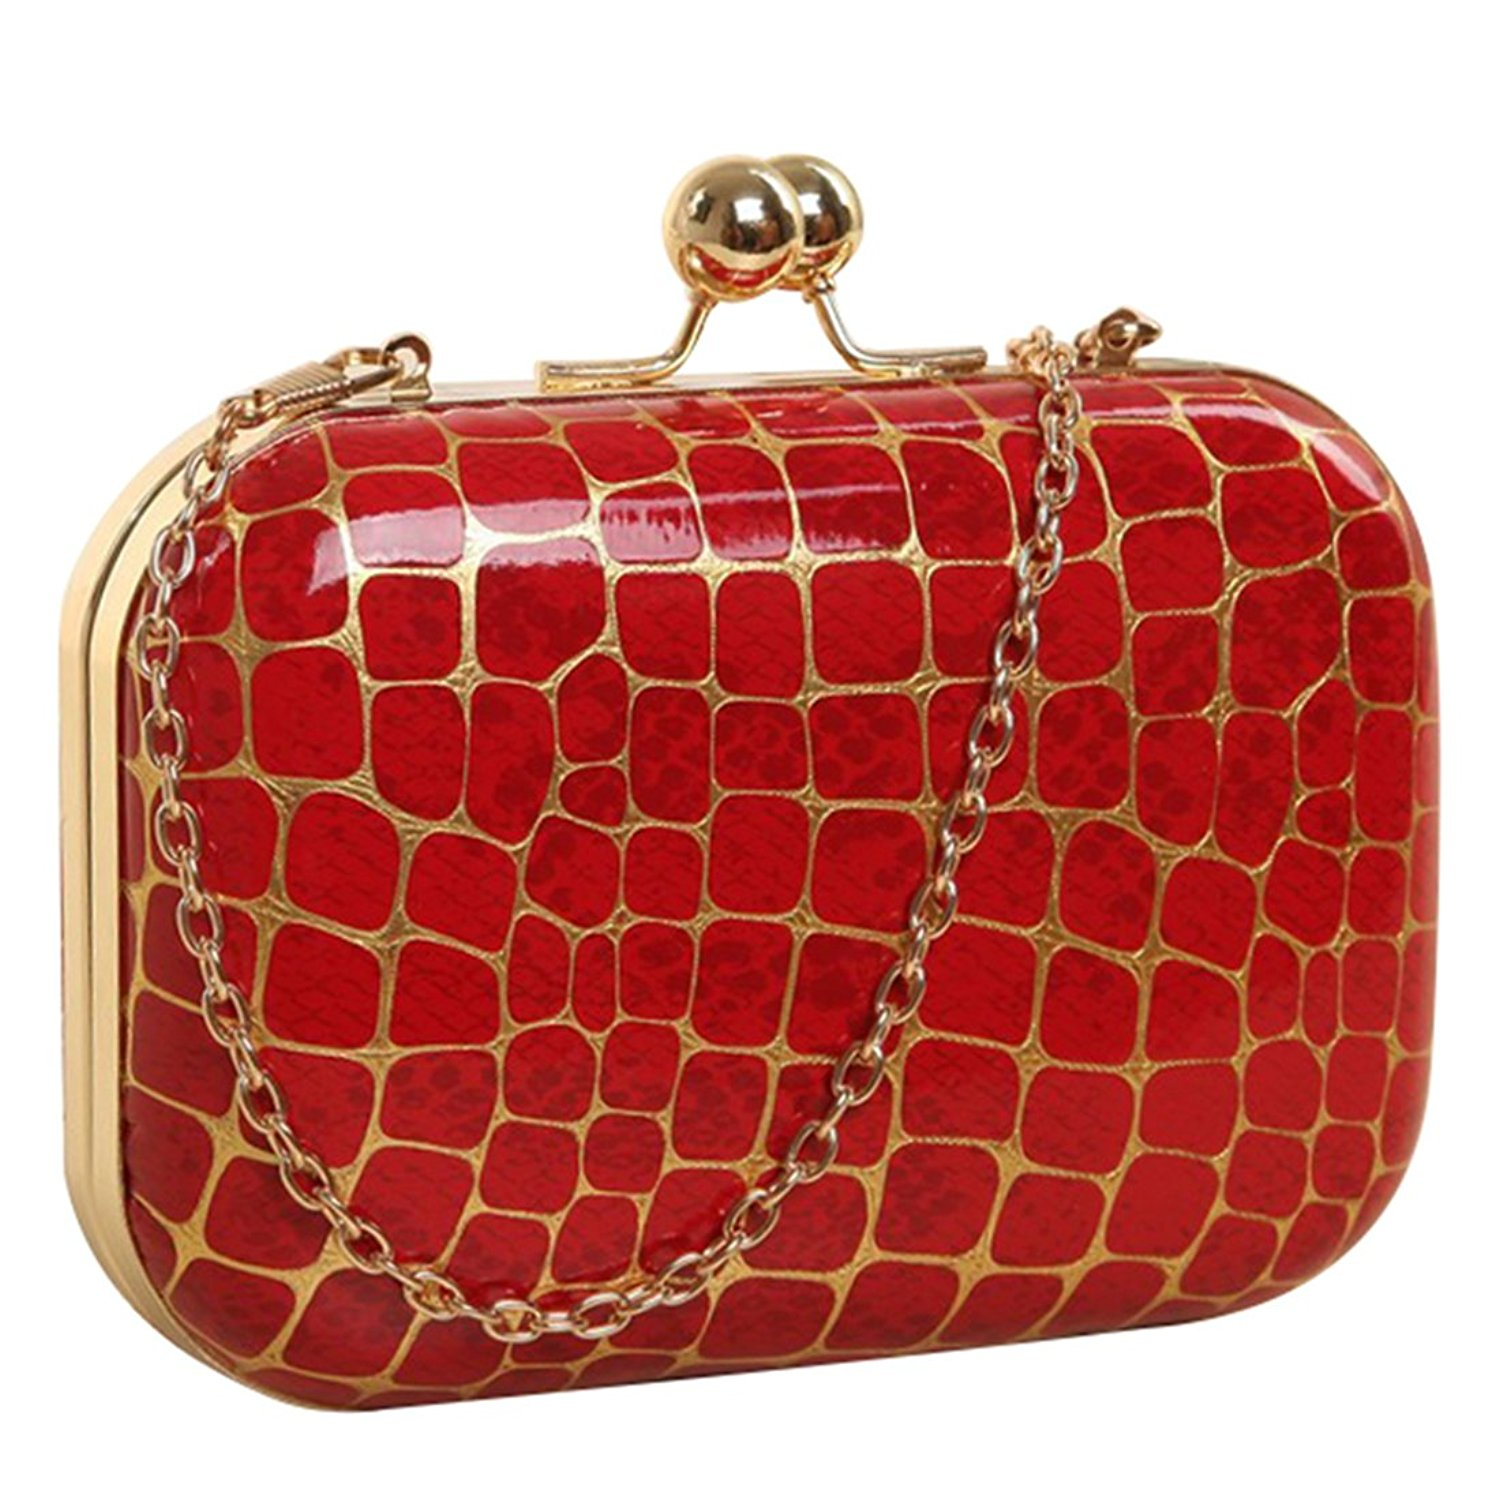 Retro Stone pattern Girls Shoulder Bag - SODIAL(R)Retro Stone pattern PU leather Women's mini evening bag fashion clutch banquet bag girls shoulder bag Messenger bag, Red